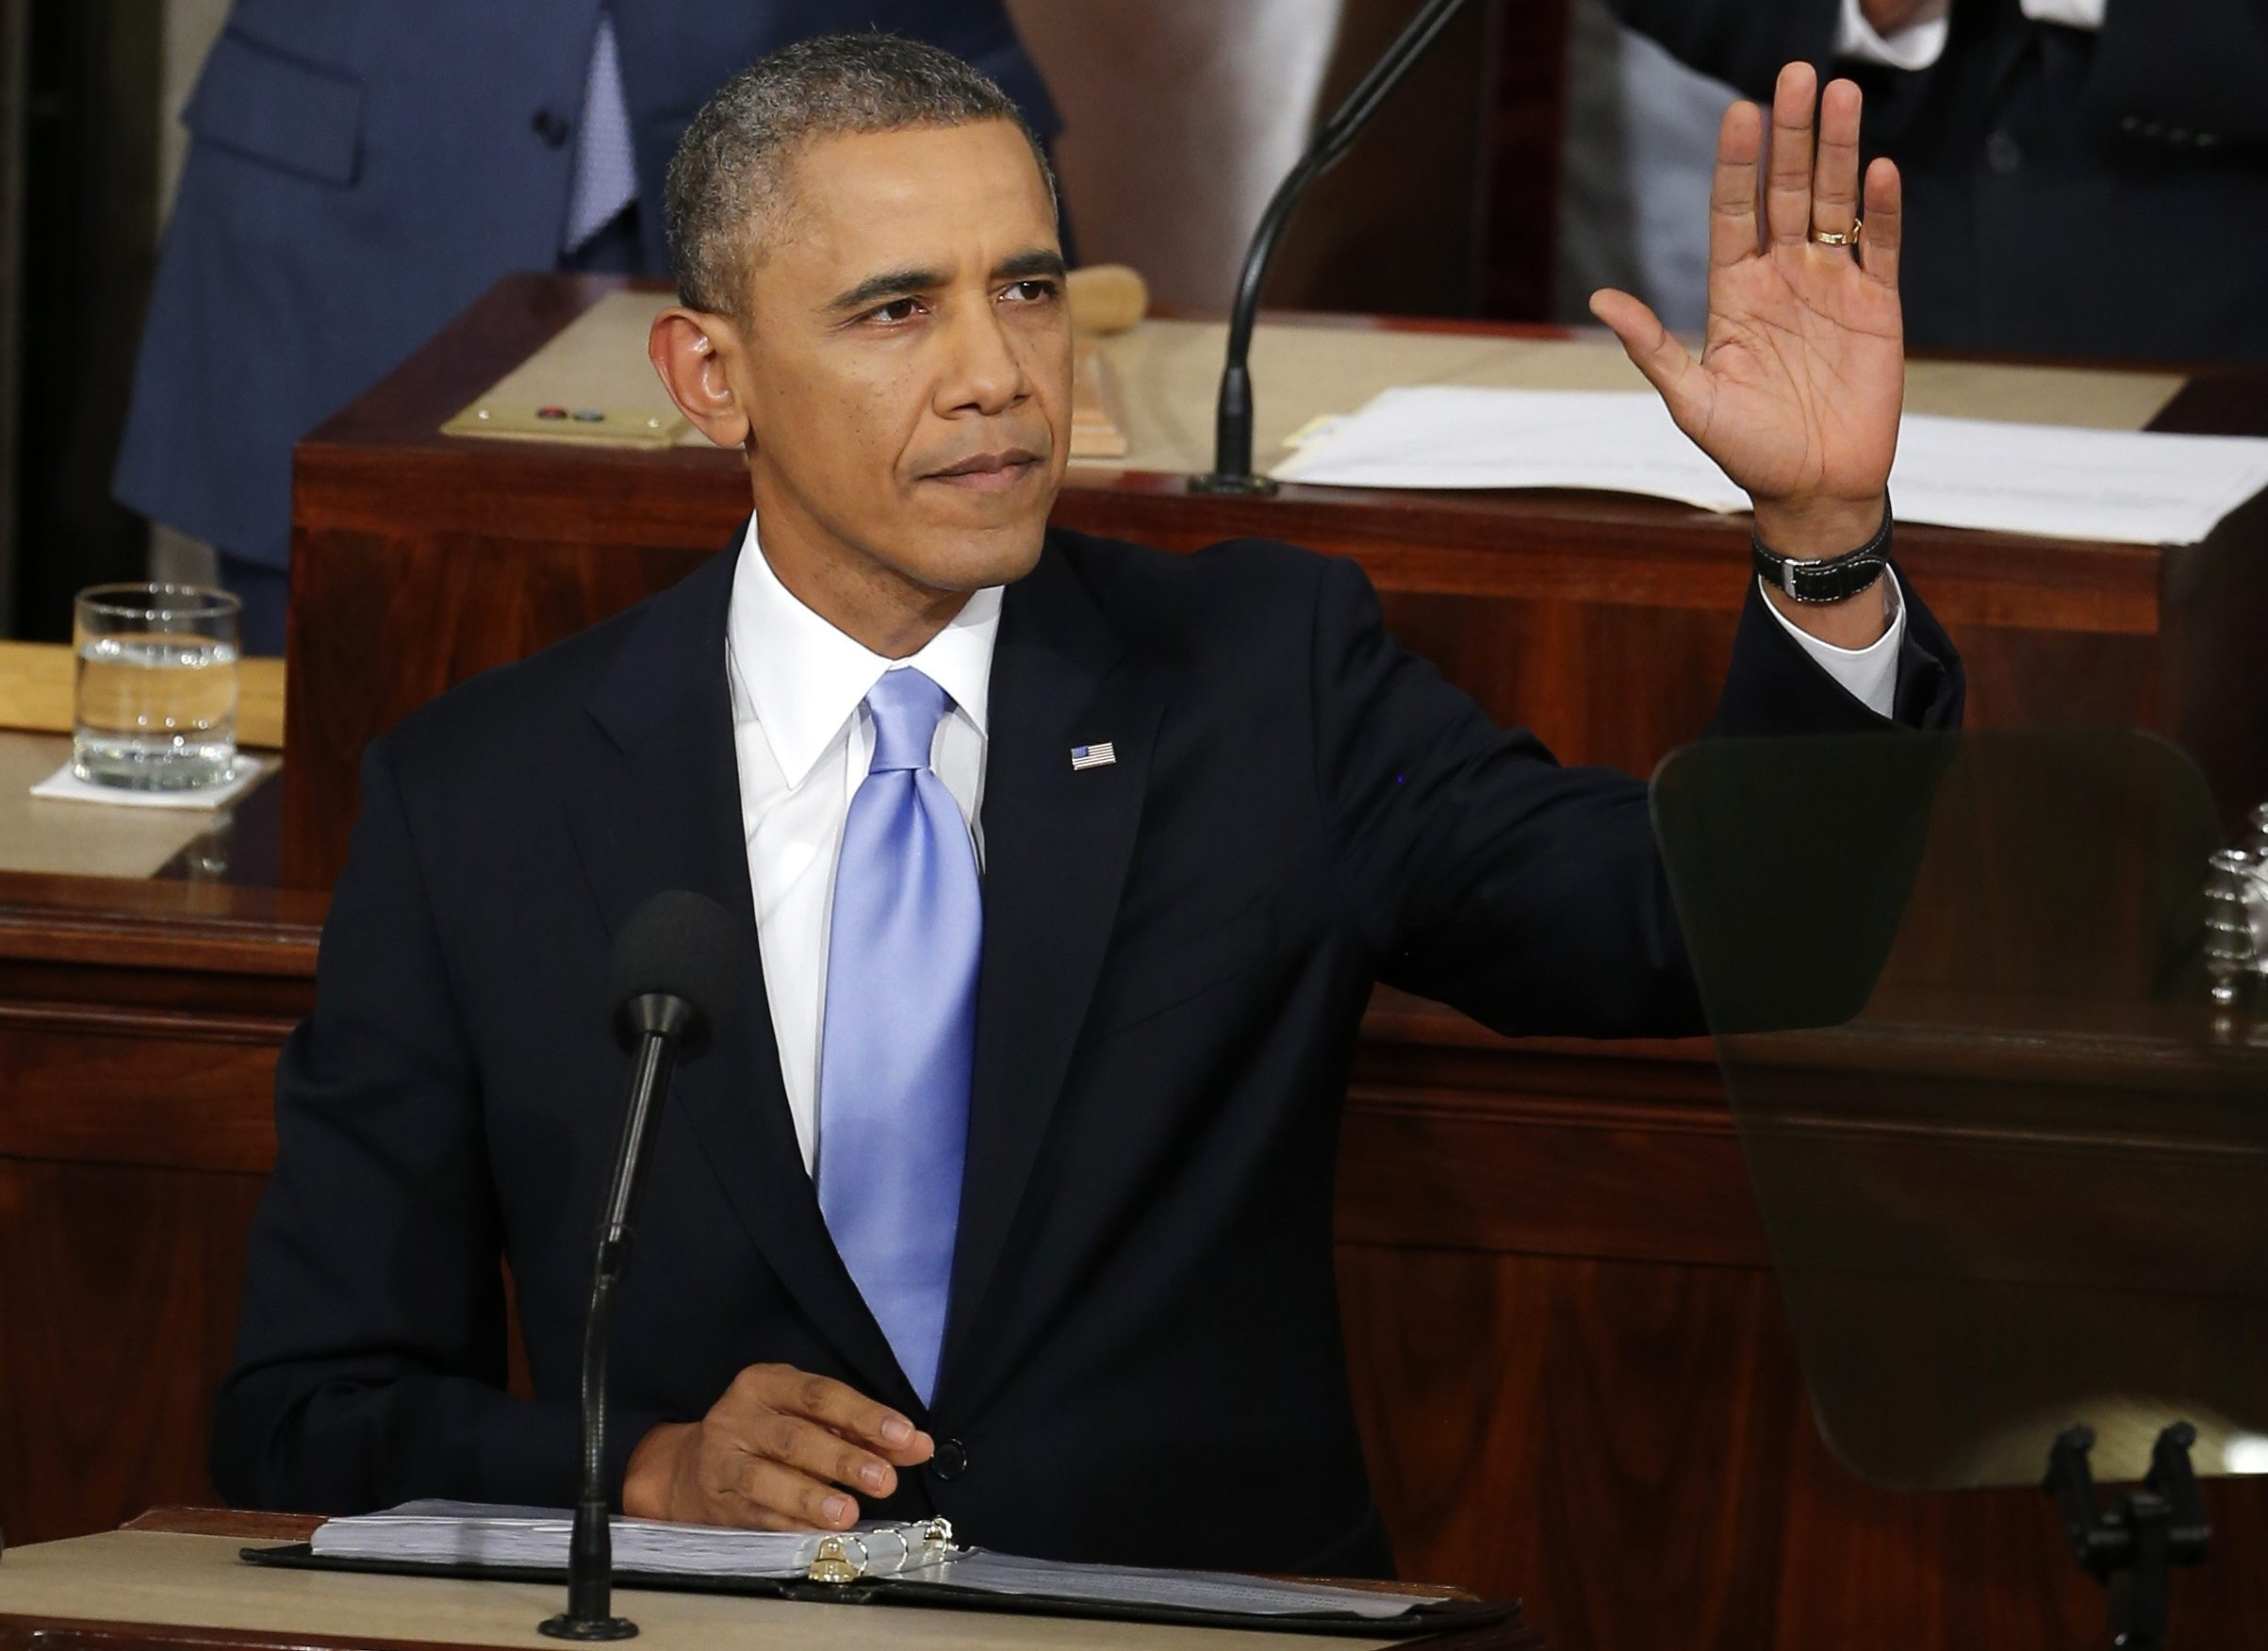 President Obama acknowledges the applause from members of Congress and others before giving his State of the Union Address at the Capitol in Washington, D.C. on Tuesday.